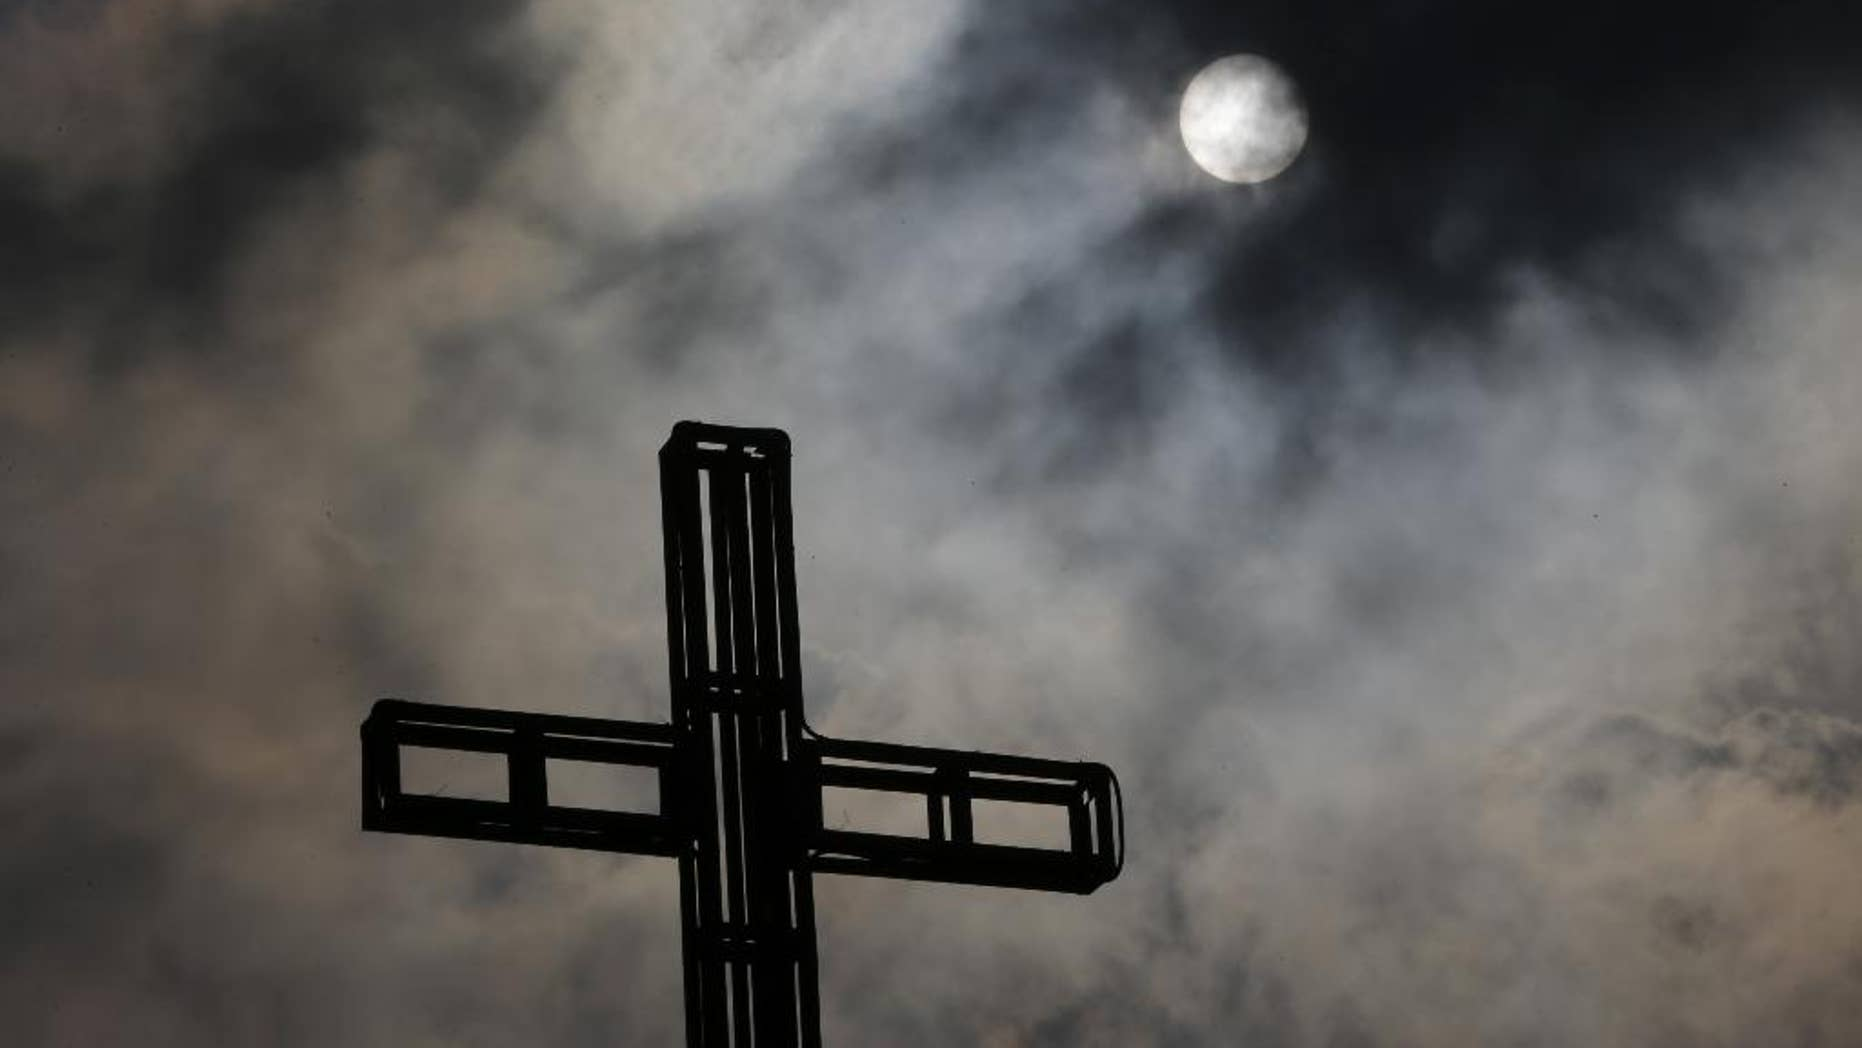 Dark clouds partially cover the sun above a church on Easter Sunday April 5, 2015 in suburban Quezon city, north of Manila, Philippines.  Tropical storm Maysak weakened before hitting the Philippines' northeastern coast Sunday, driving away thousands of Lenten holiday vacationers and tourists. (AP Photo/Aaron Favila)